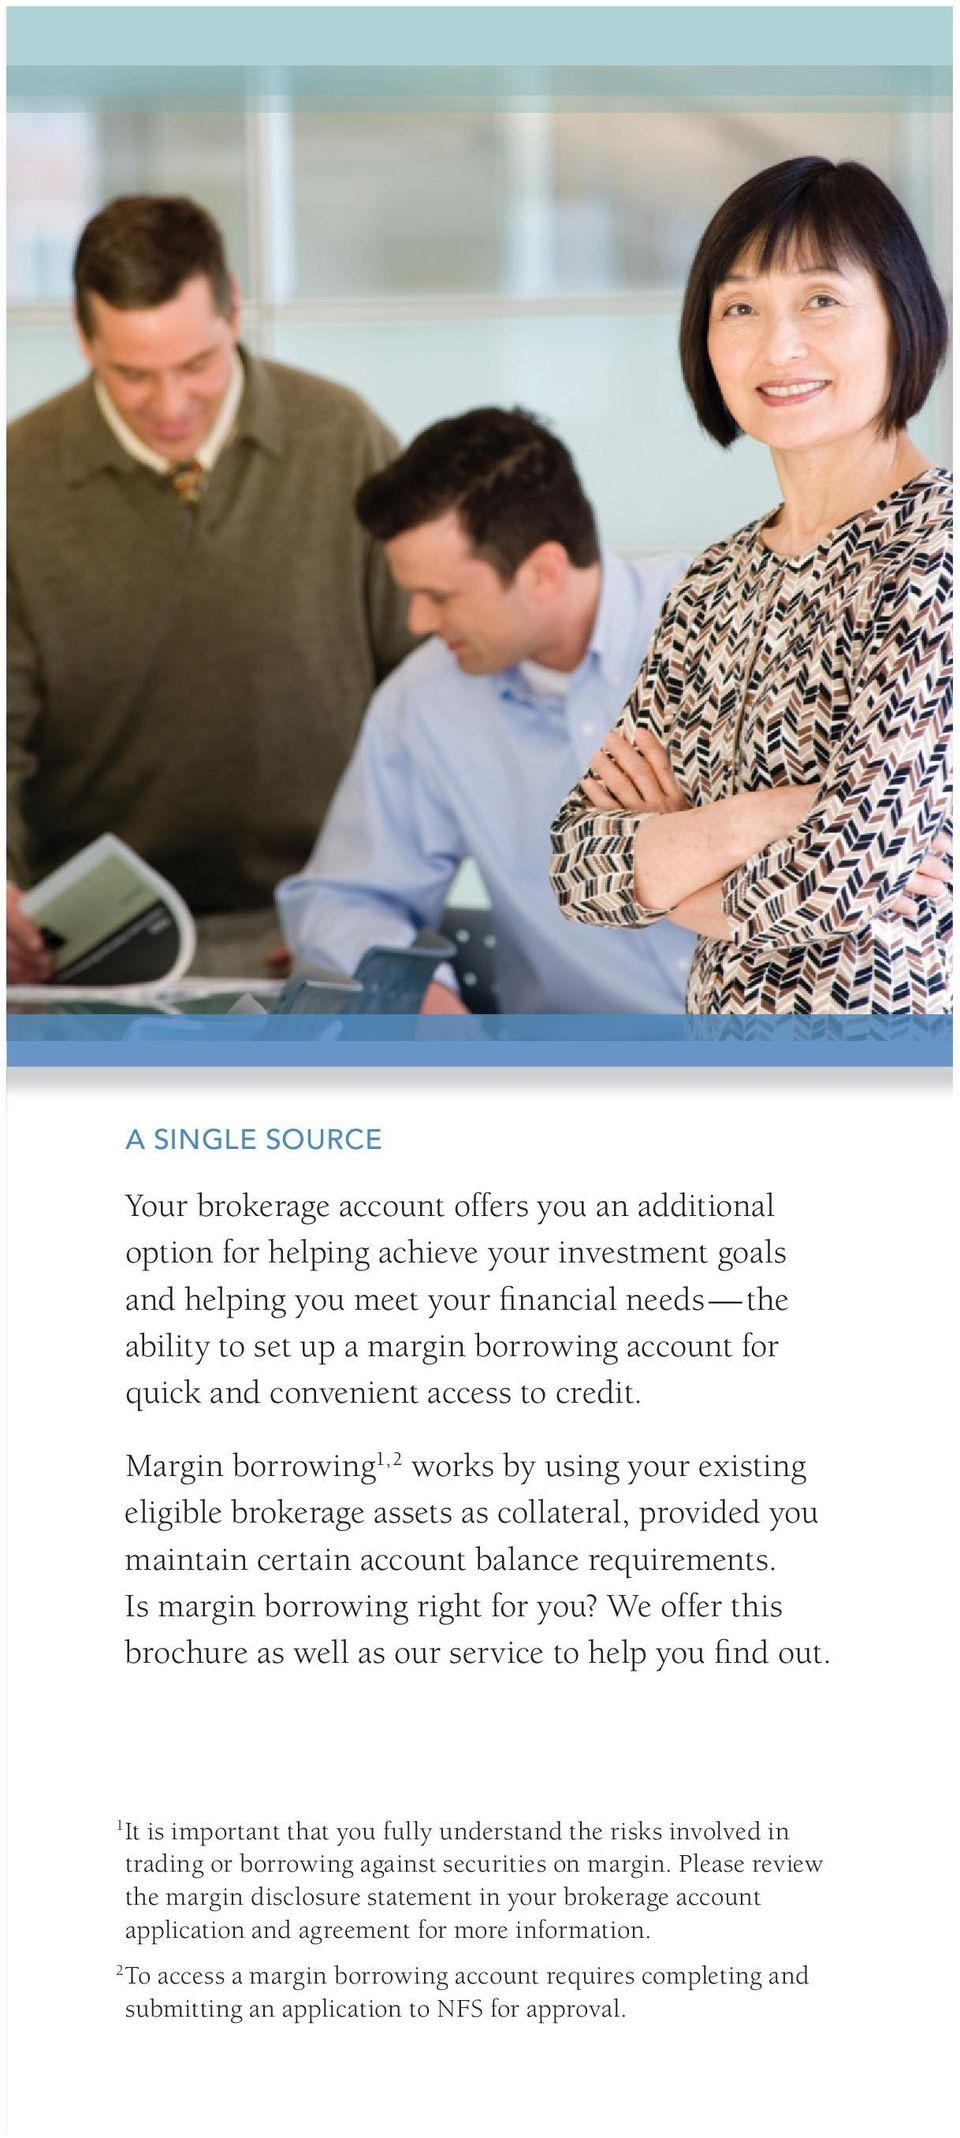 Margin borrowing 1, 2 works by using your existing eligible brokerage assets as collateral, provided you maintain certain account balance requirements. Is margin borrowing right for you?